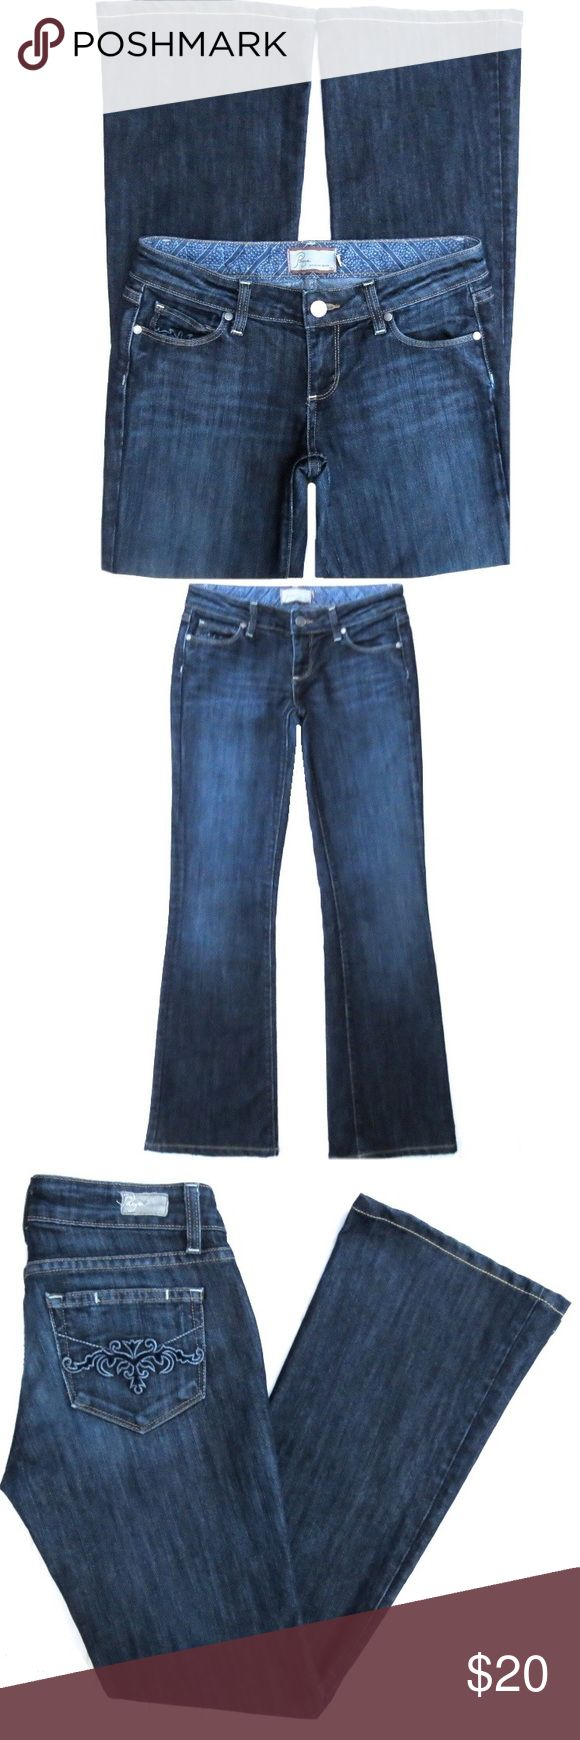 "Paige Premium Denim Laurel Canyon Jeans Paige Premium Denim Laurel Canyon jeans. Dark blue, distressed wash. Cotton/Polyester. Size 26. They have a 8"" rise and 31"" inseam. They have been hemmed. Amazing fit! Paige Jeans Jeans"